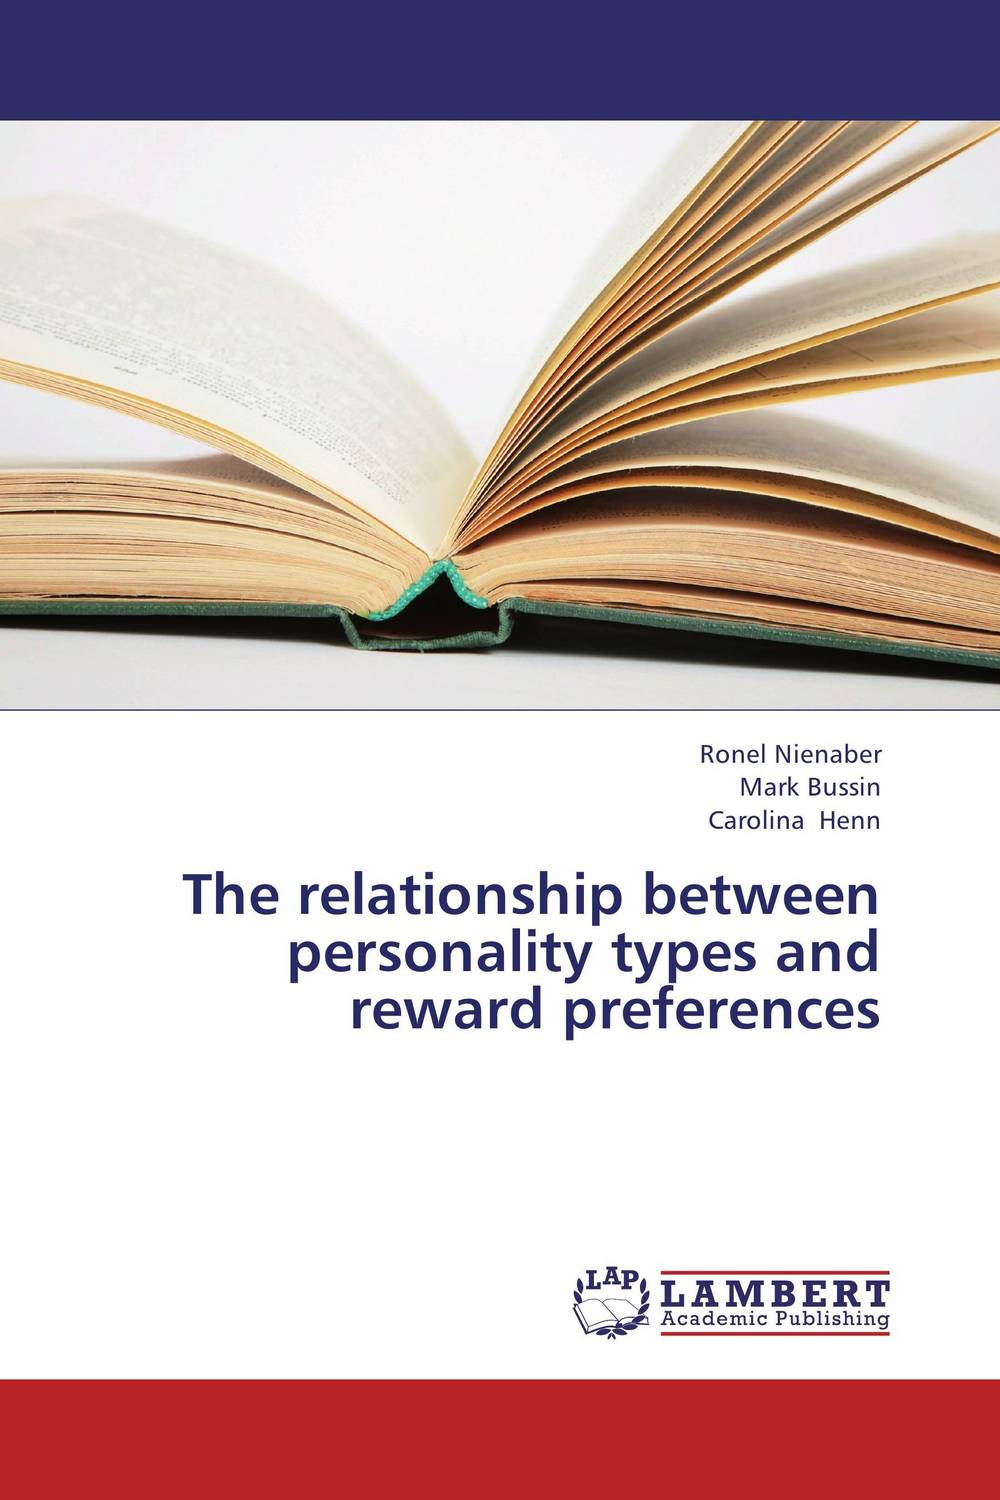 The relationship between personality types and reward preferences categories